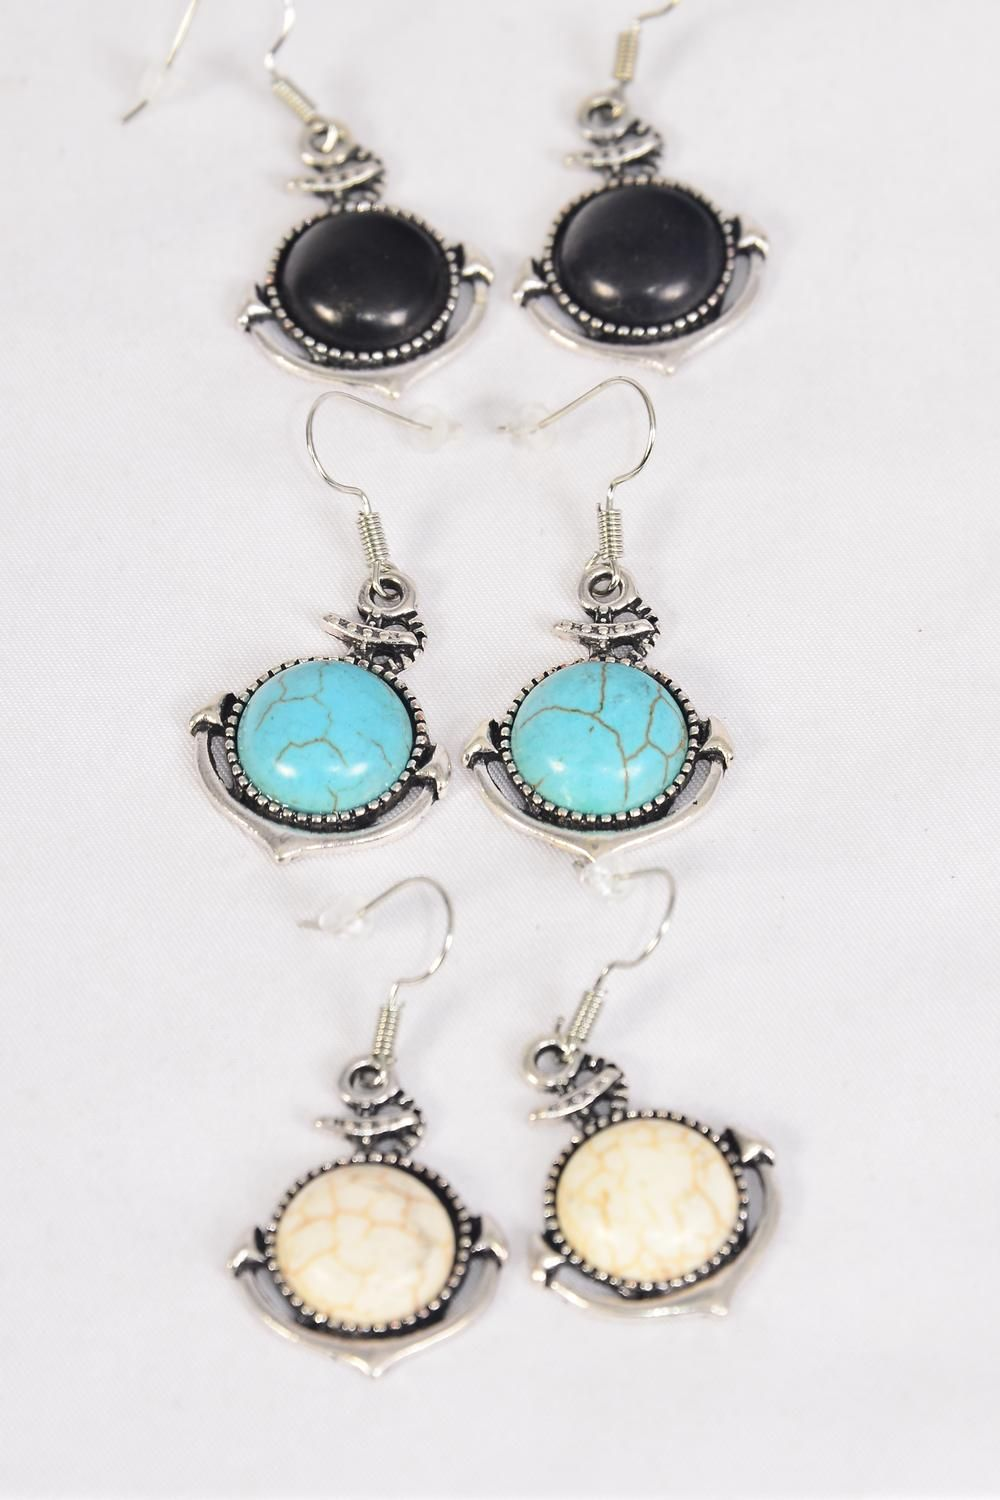 "Earrings Metal Antique Anchor Real Semiprecious Stone/DZ **Fish Hook** Size-1""x 1"" Wide,4 Black,4 Ivory,4 Turquoise Asst,Earring Card & OPP Bag & UPC Code -"